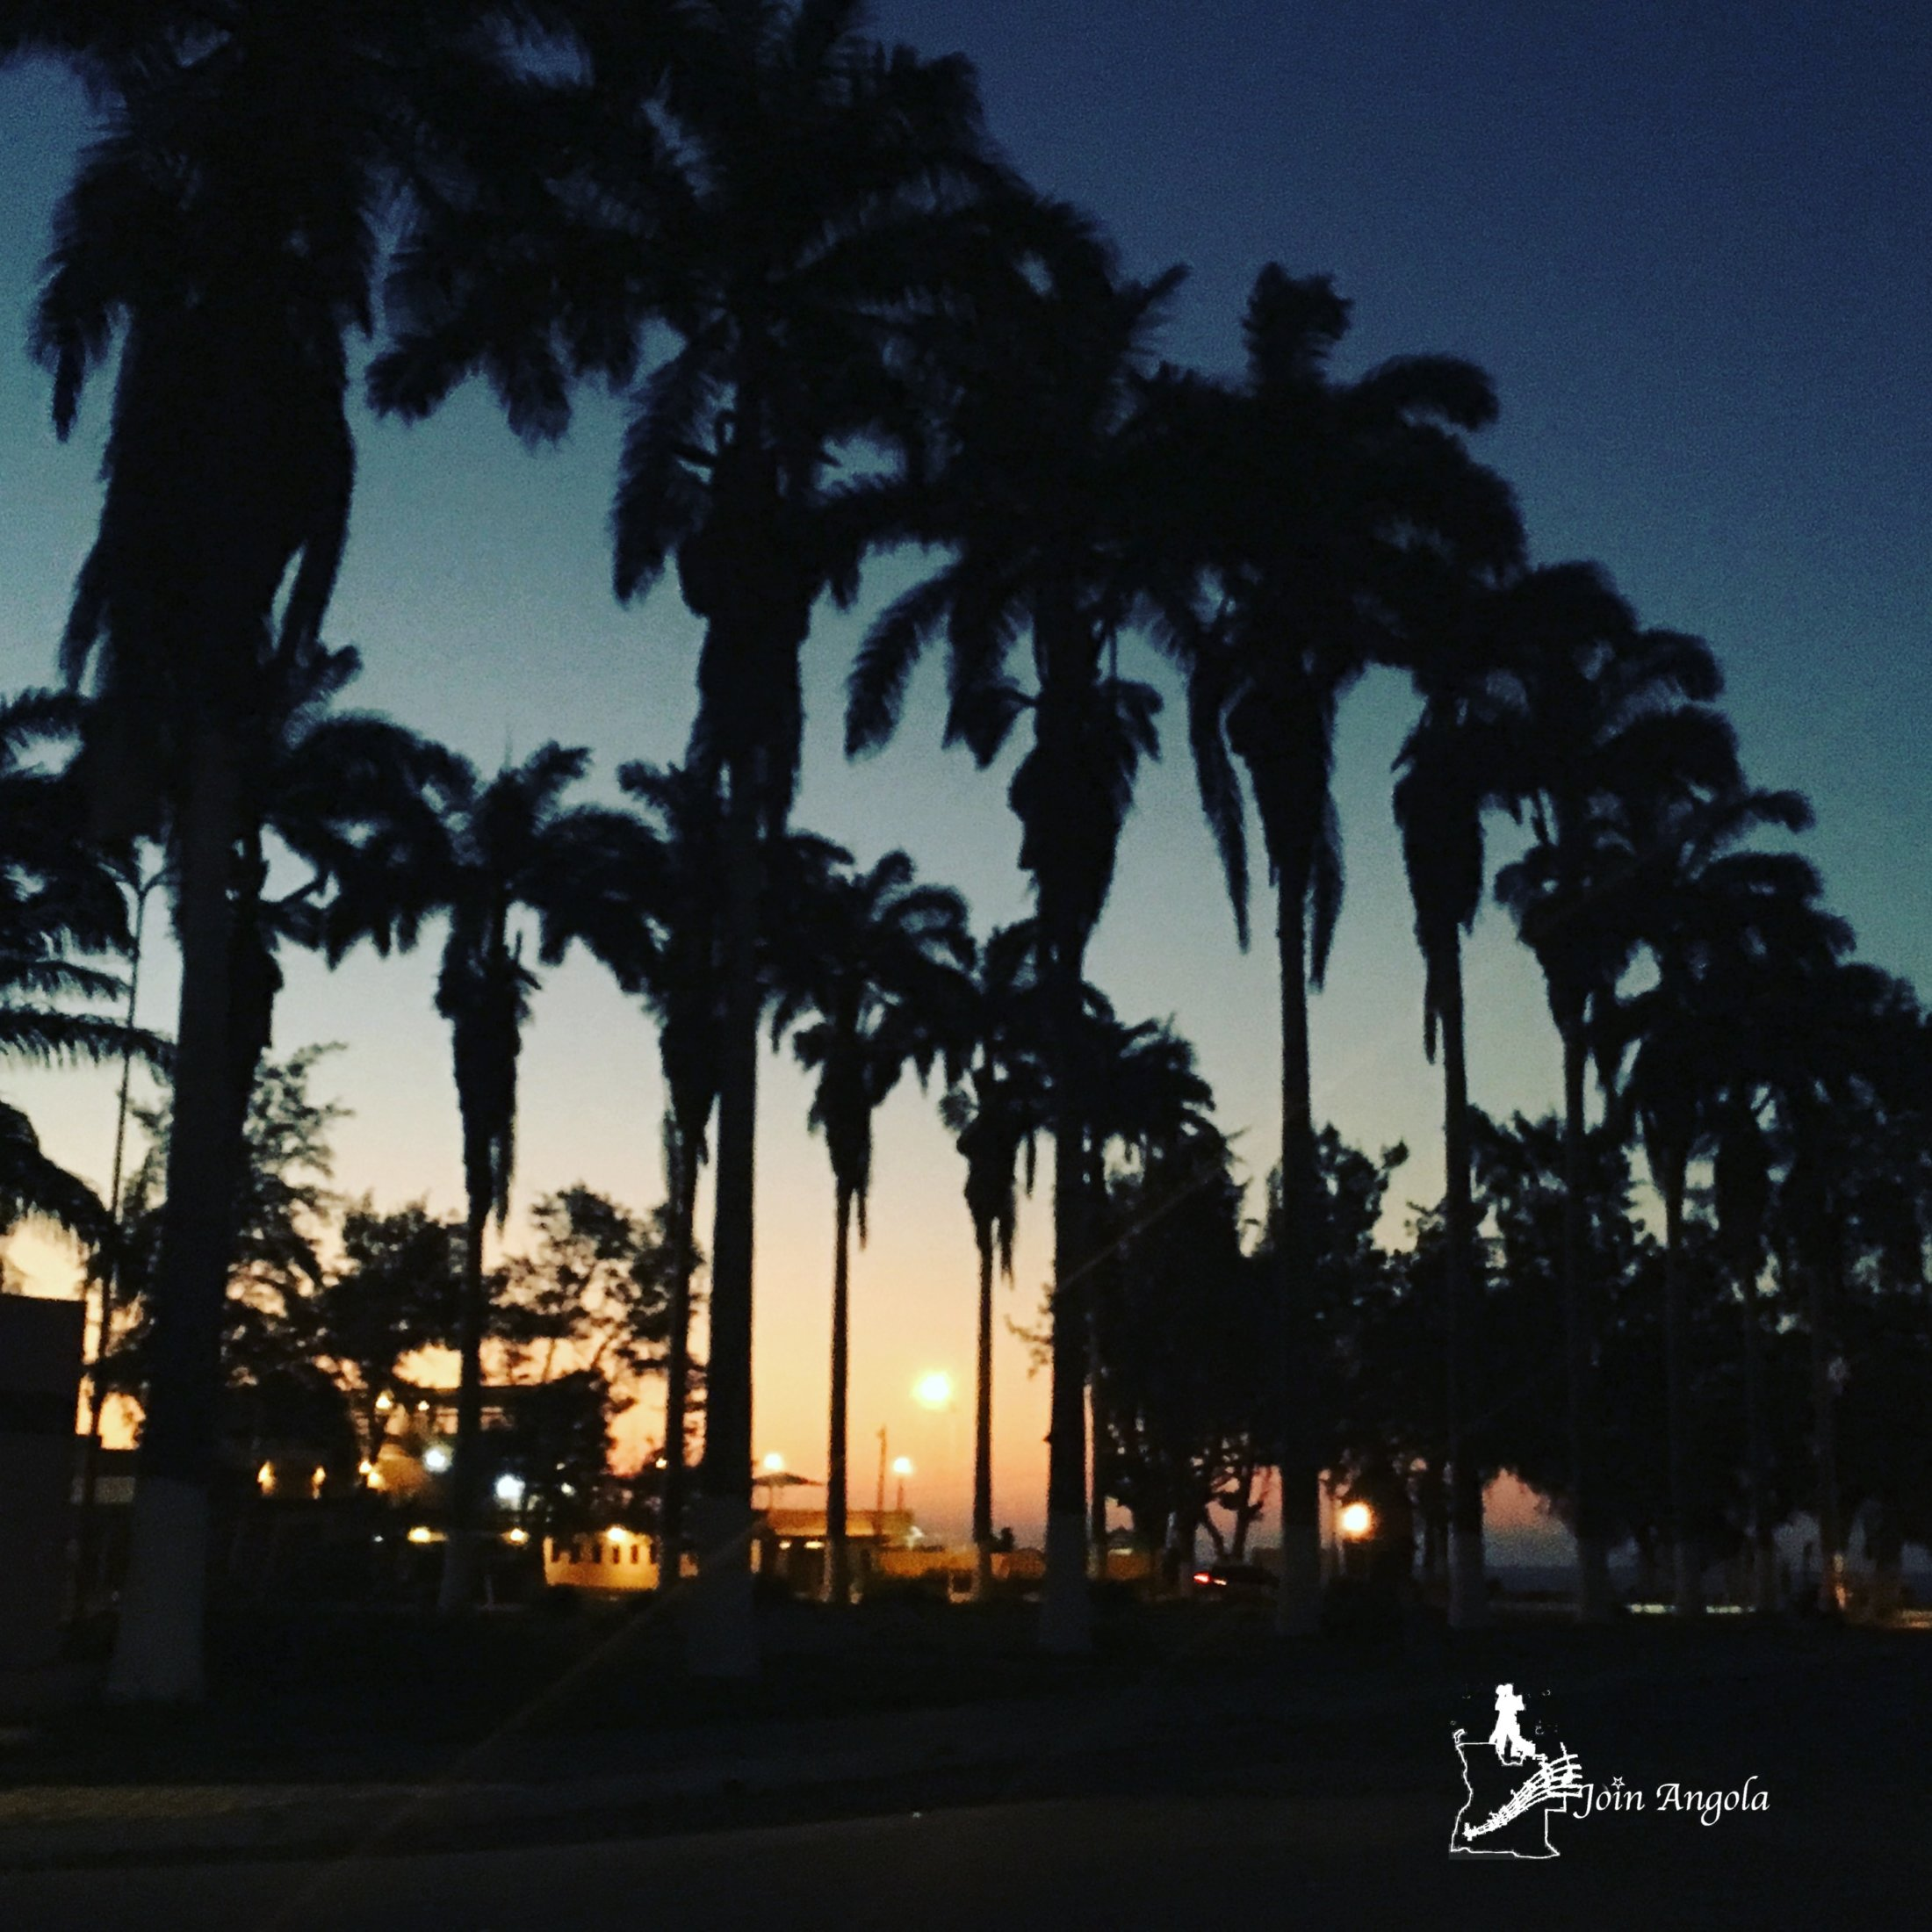 A beautiful sunset in the Largo da Feira, a space that is close to Praia Morena (the main beach in the city of Benguela) and filled with small bars and restaurants. The two rows of tall palms look particularly beautiful when the sun is setting over the sea behind them.